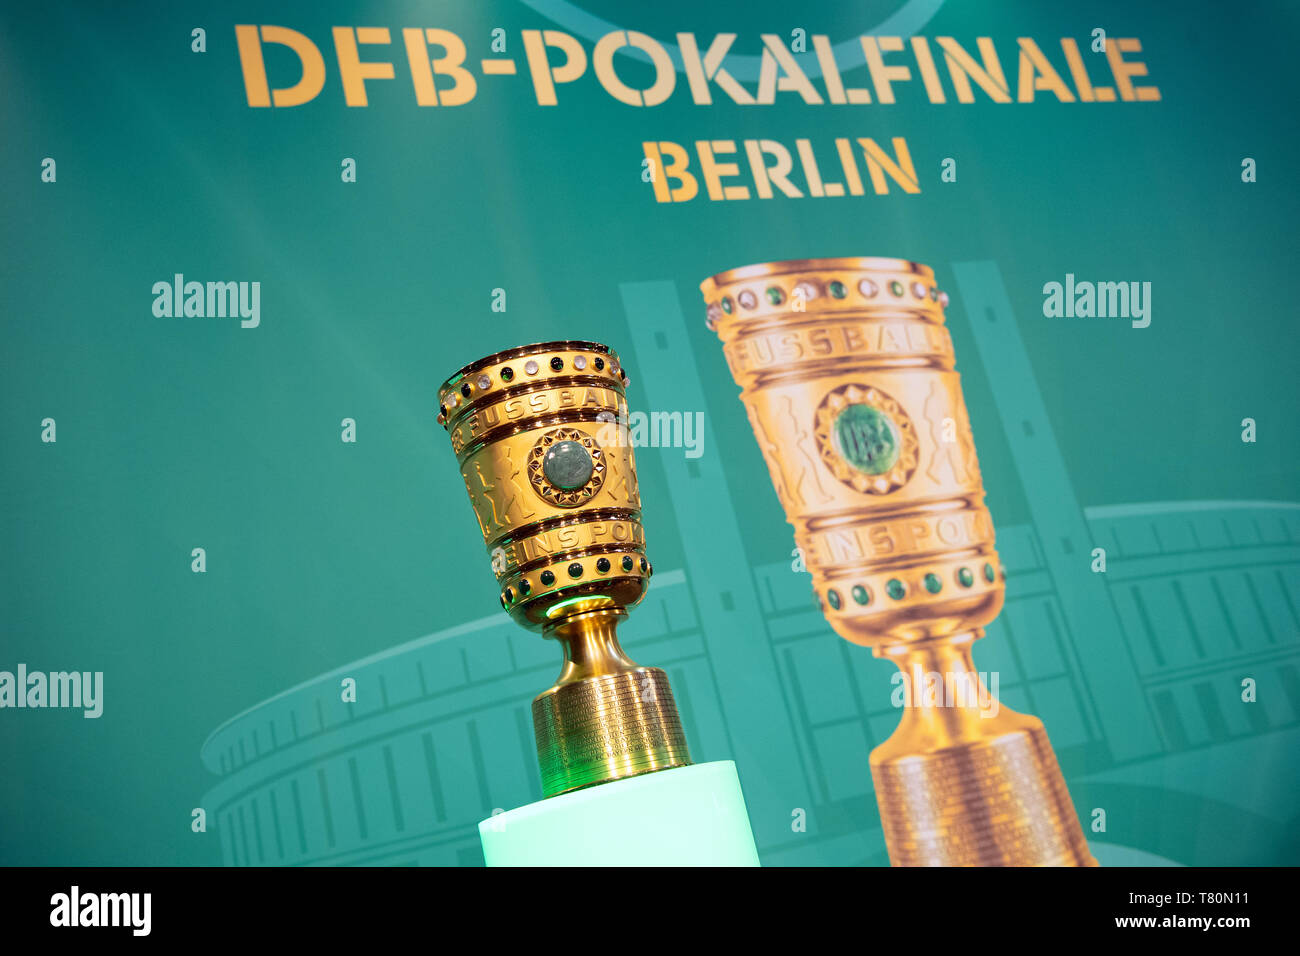 Berlin, Germany. 10th May, 2019. Soccer: DFB Cup, Cup Handover of the DFB Cup. The DFB Cup will be placed on a pedestal before the start of the event. Credit: Soeren Stache/dpa/Alamy Live News - Stock Image